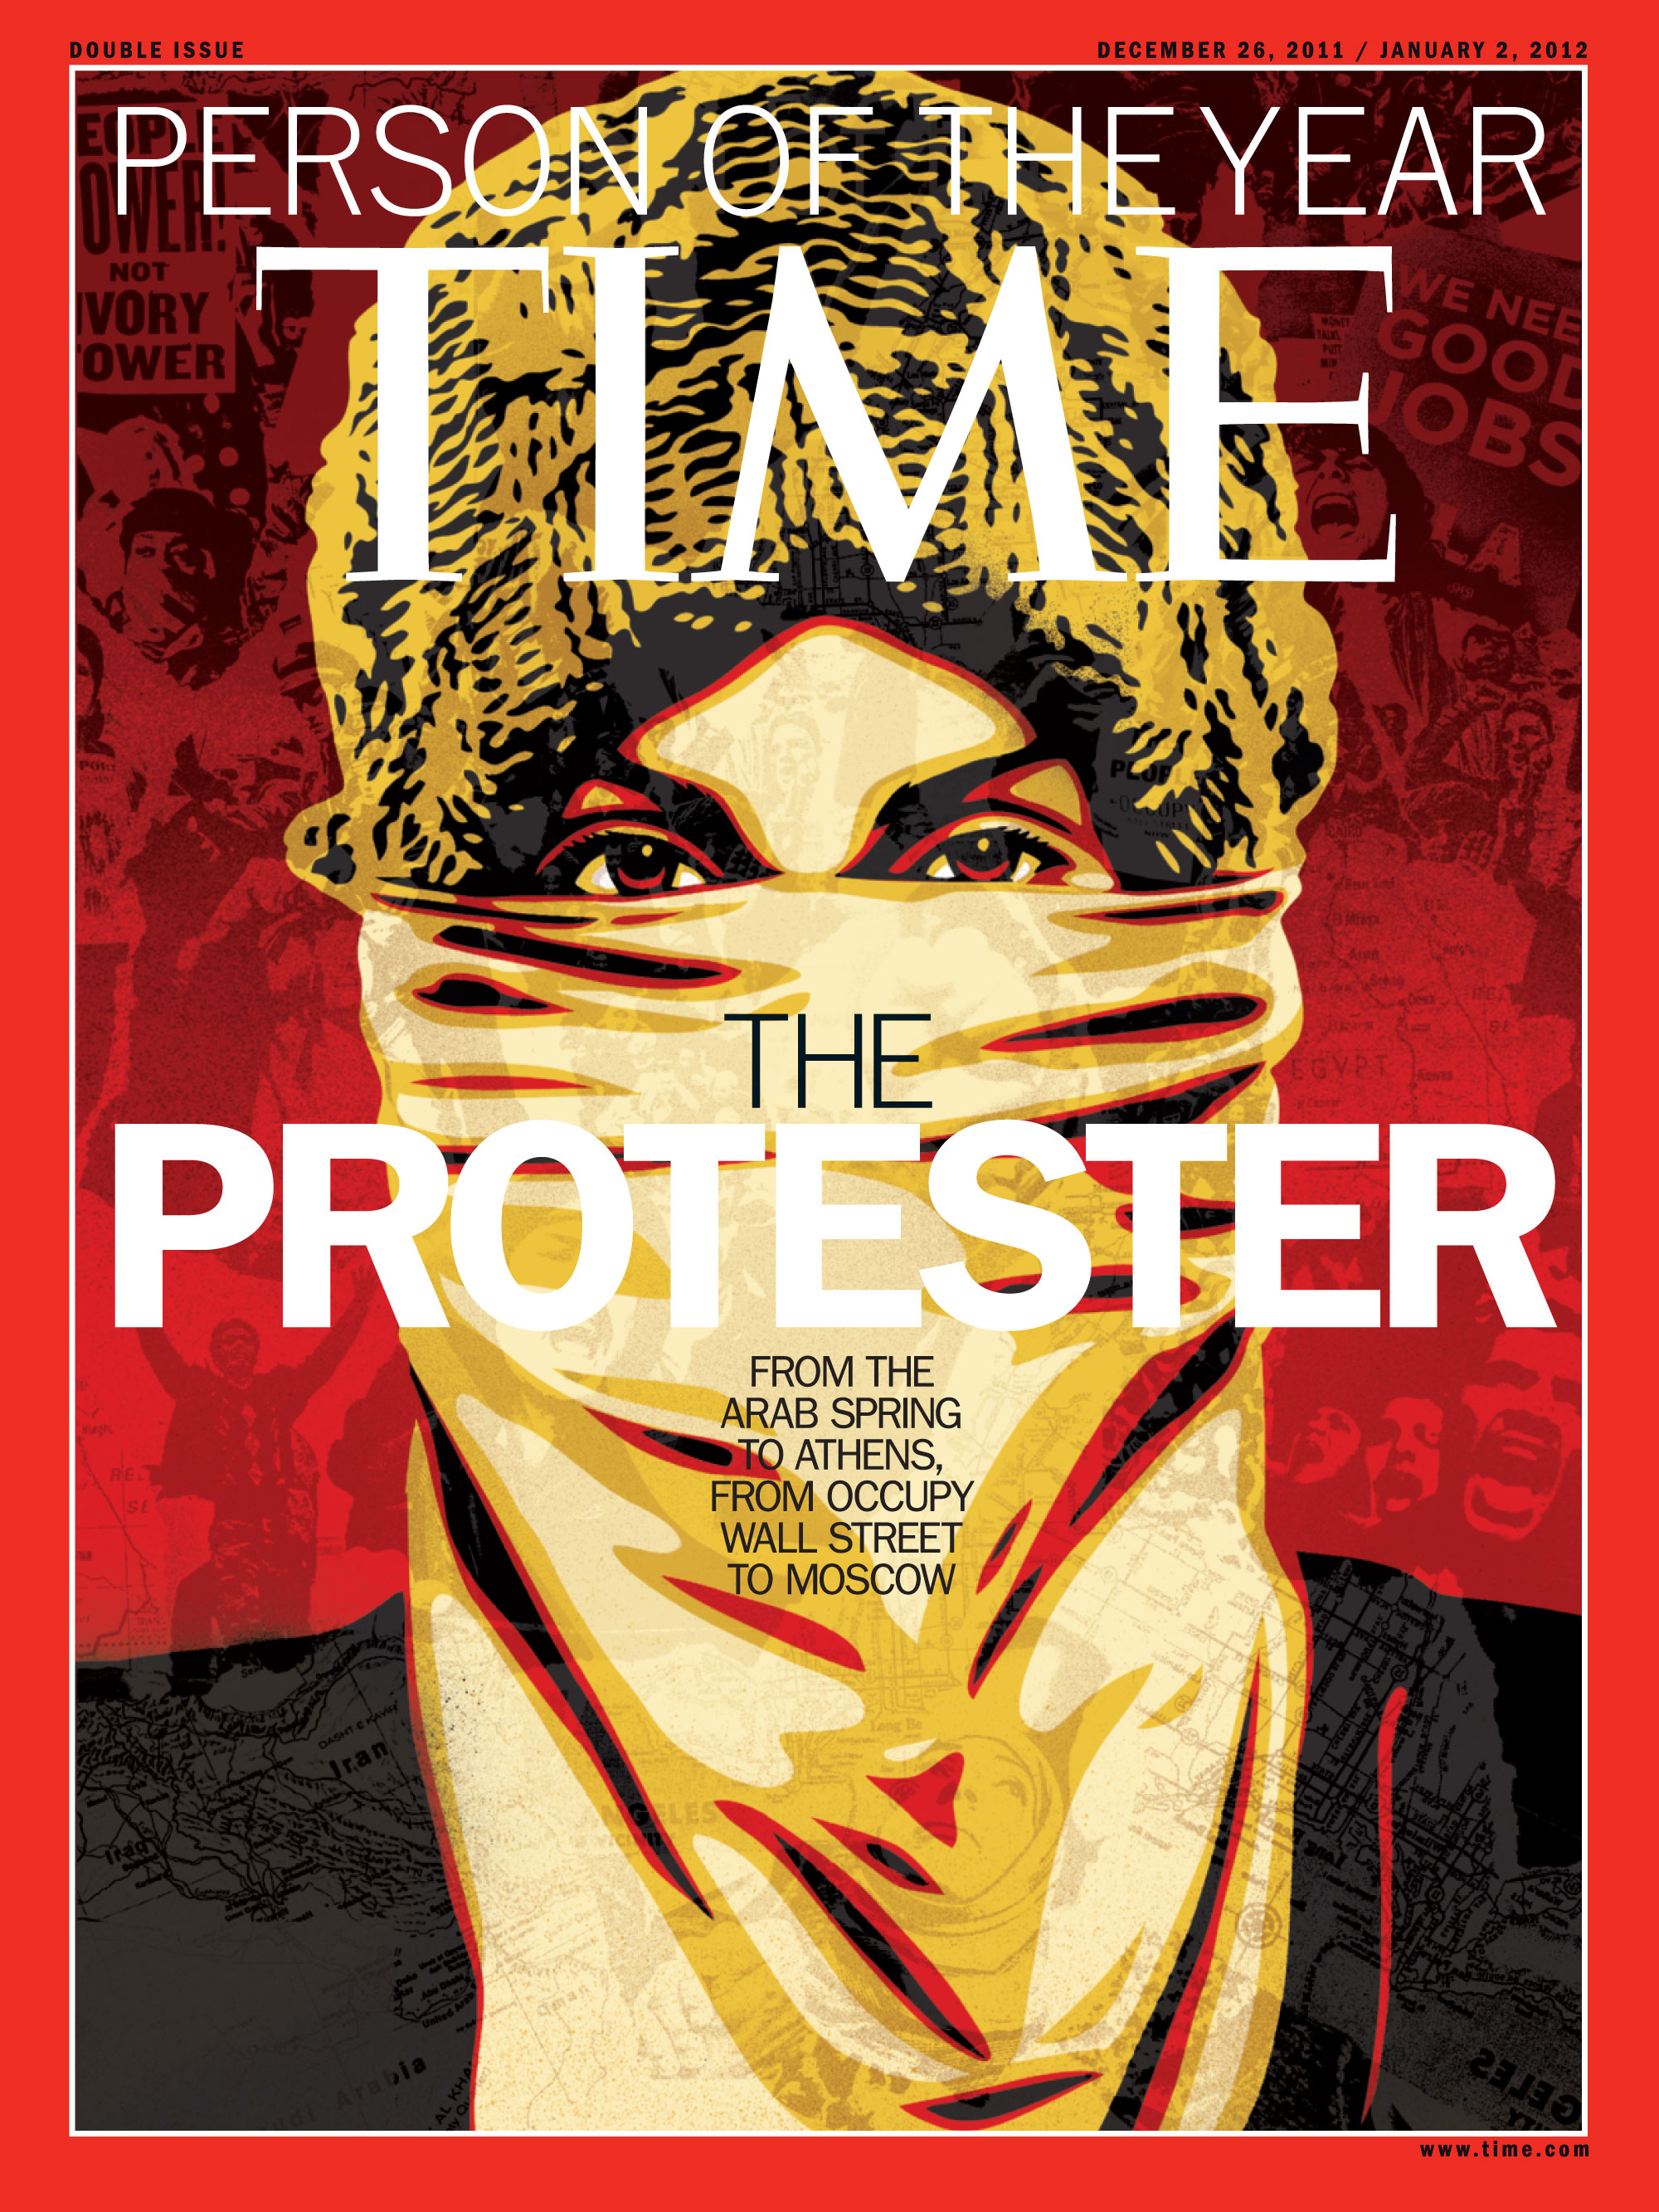 Illustration by Shepard Fairey for TIME